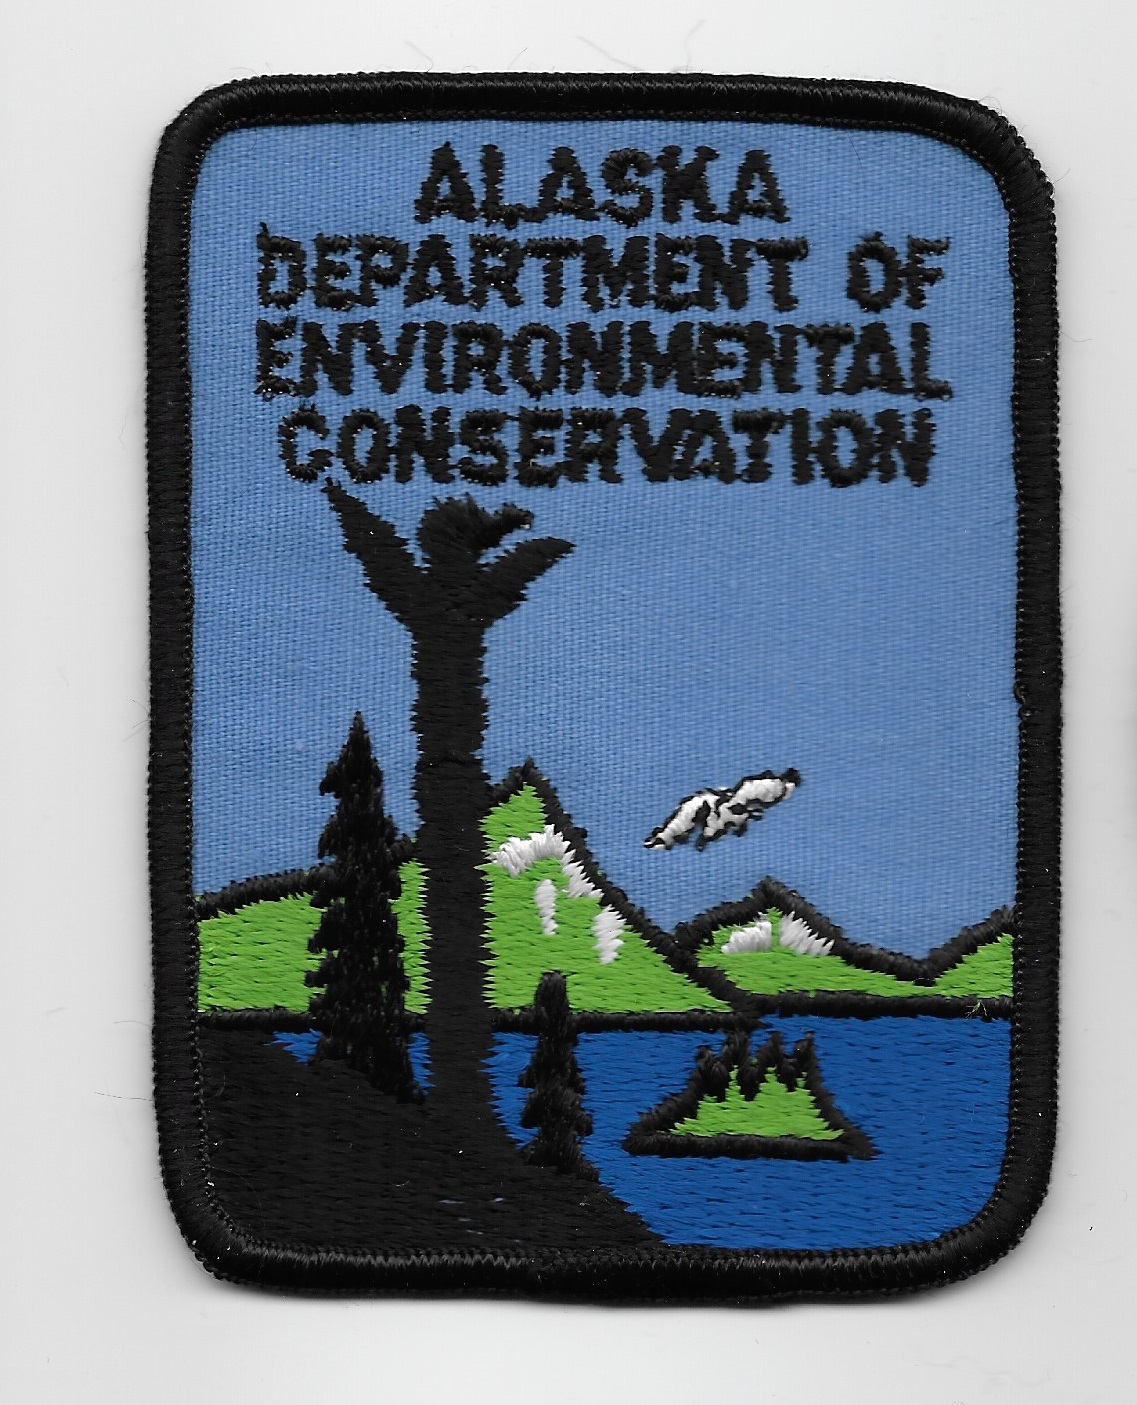 Alaska Fish & Wildlife Conservation